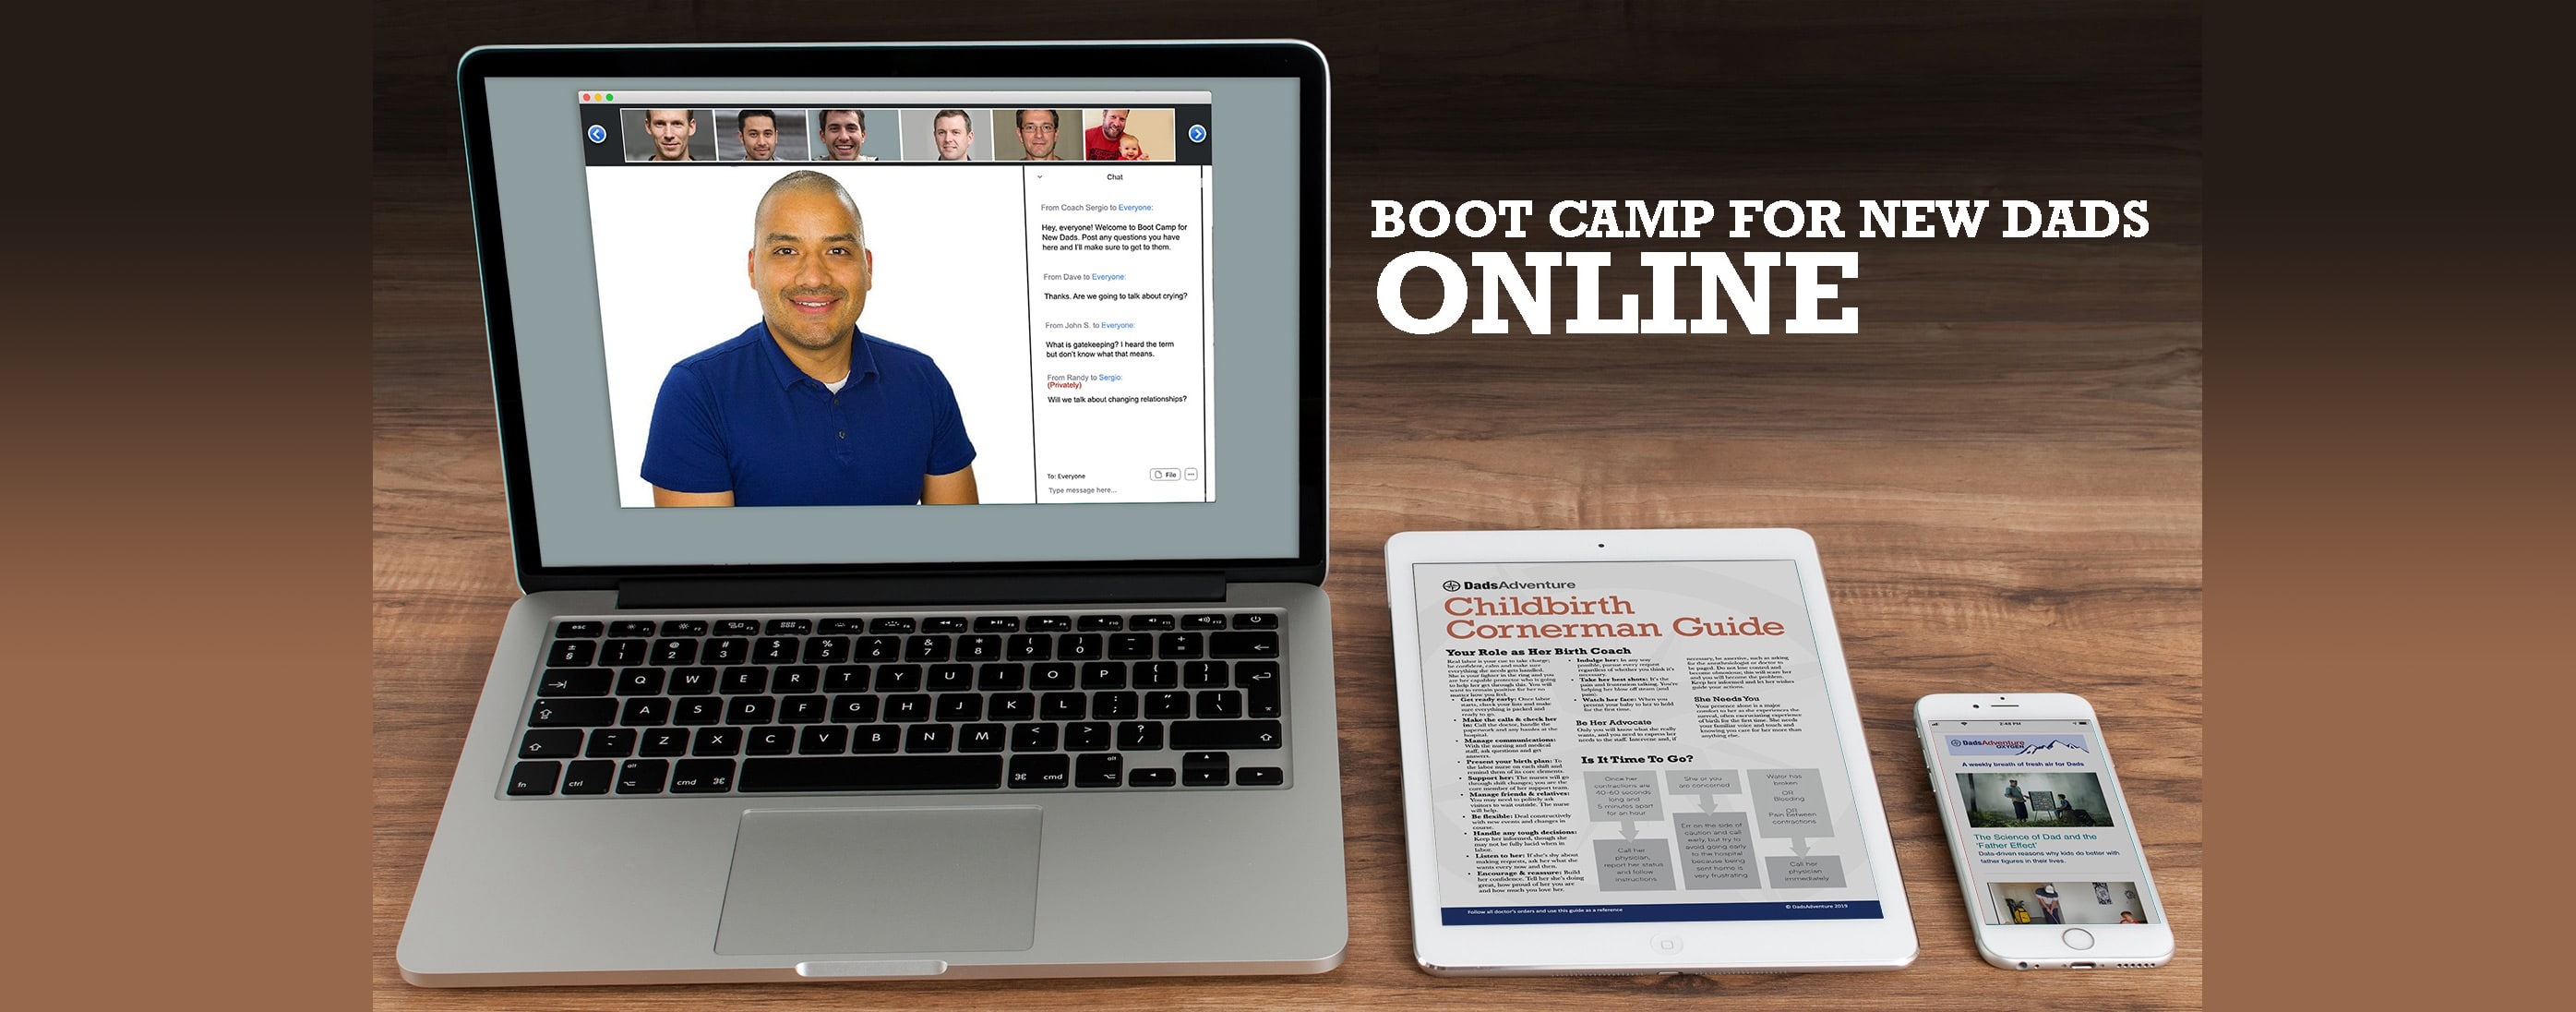 Boot Camp for New Dads Online